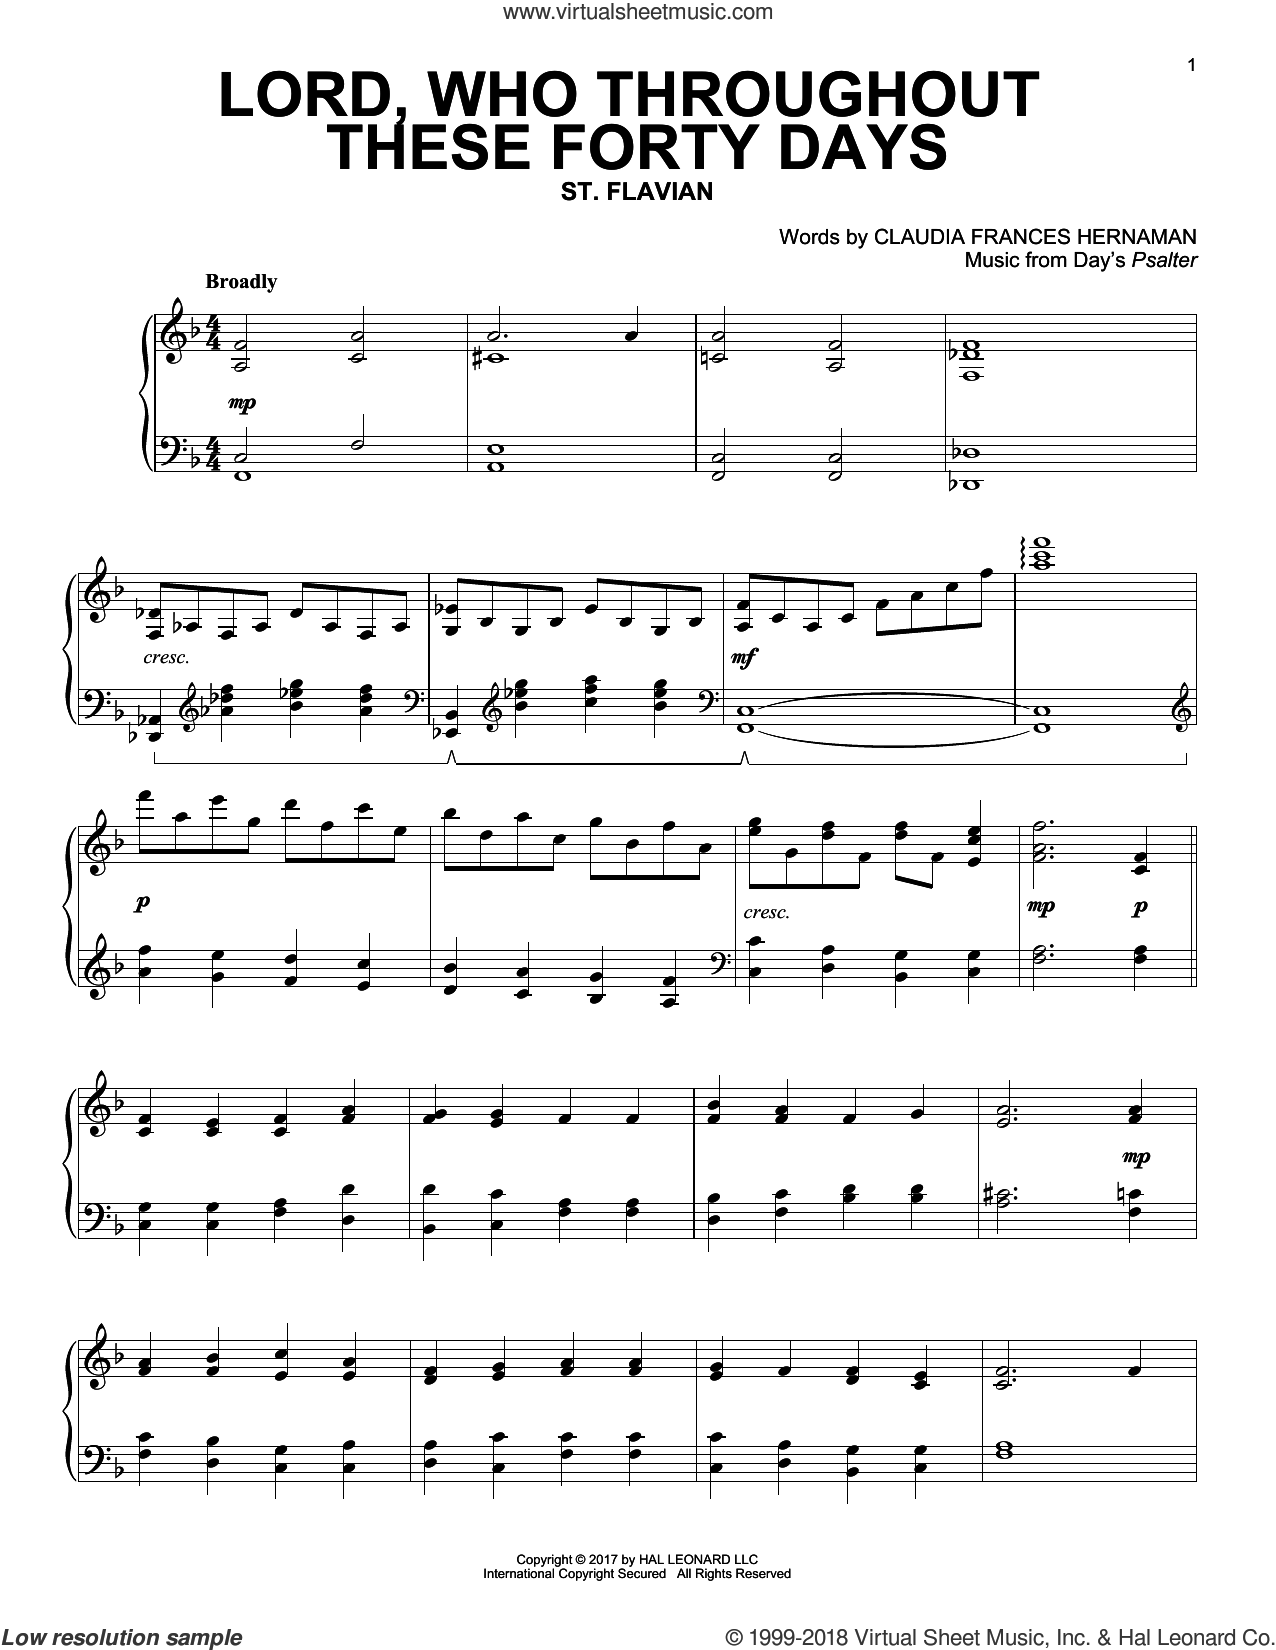 Lord, Who Throughout These Forty Days sheet music for piano solo by Claudia Frances Hernaman. Score Image Preview.